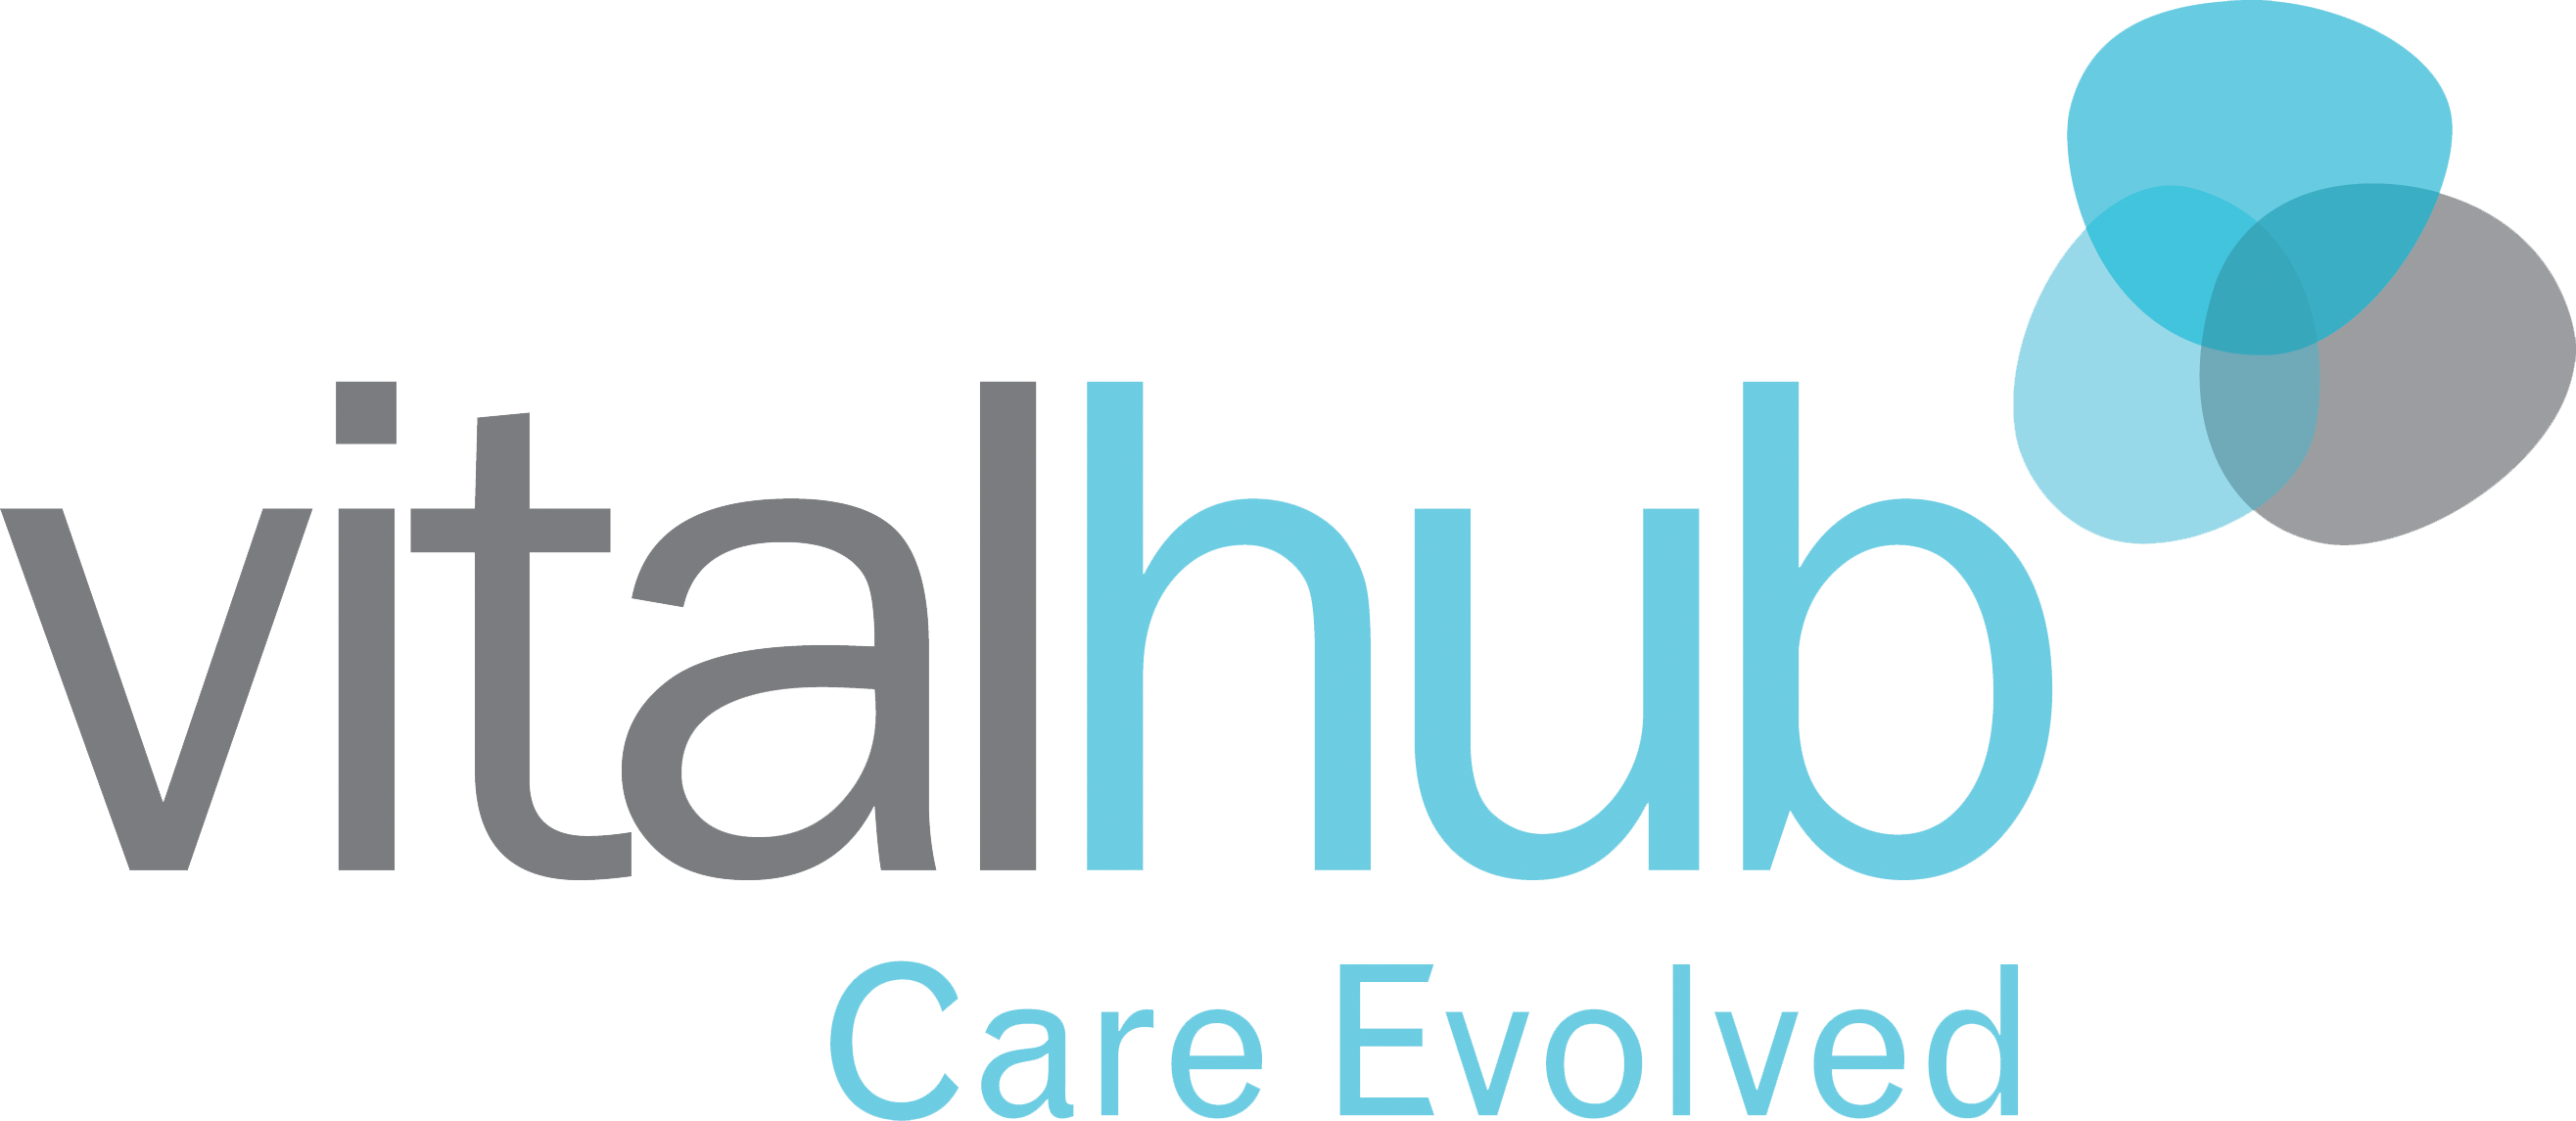 VitalHub Announces Licensing Deal with Surrey and Sussex Healthcare NHS Trust